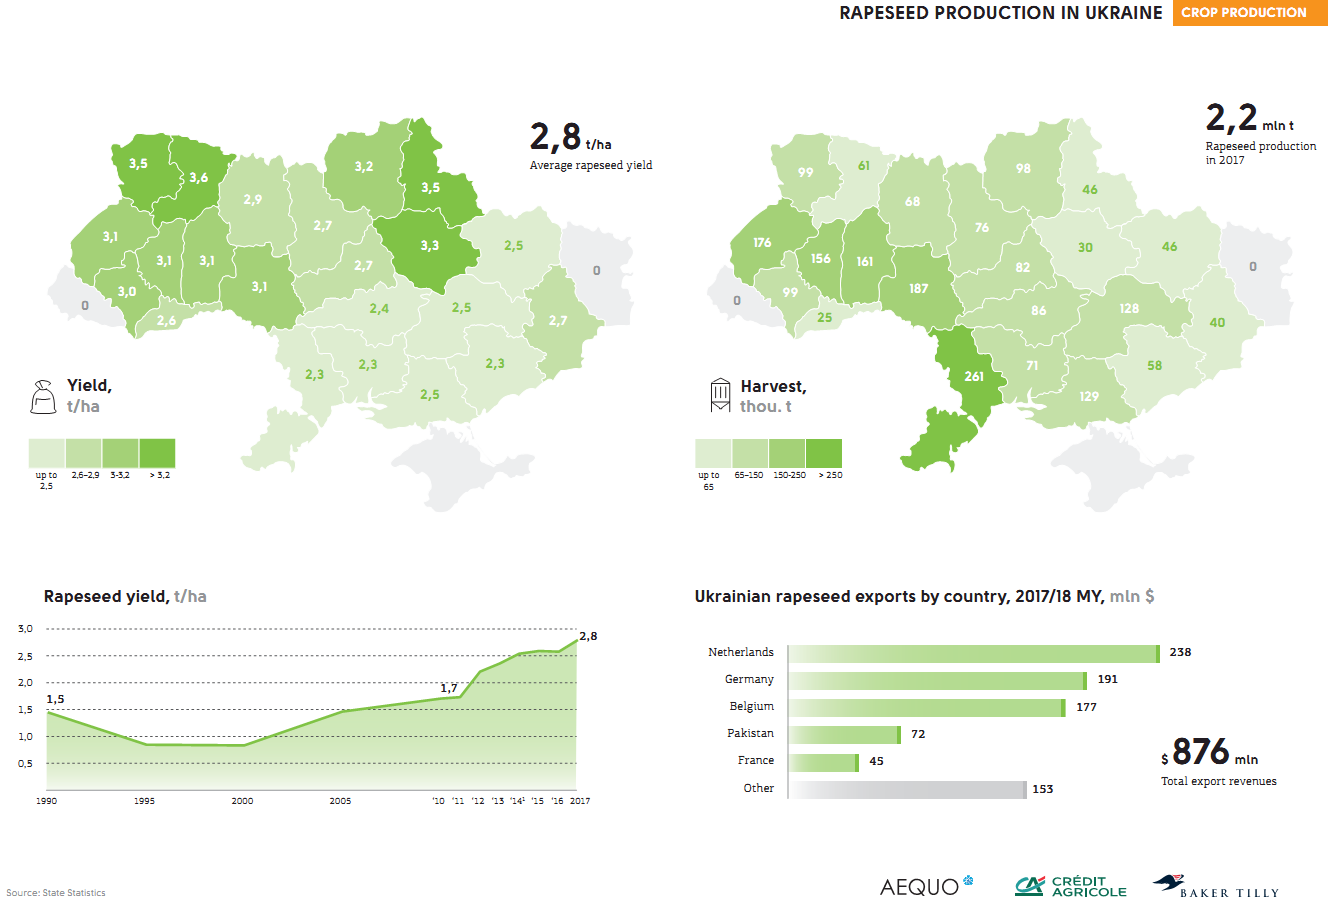 Rapeseed production in Ukraine (click for full resolution)